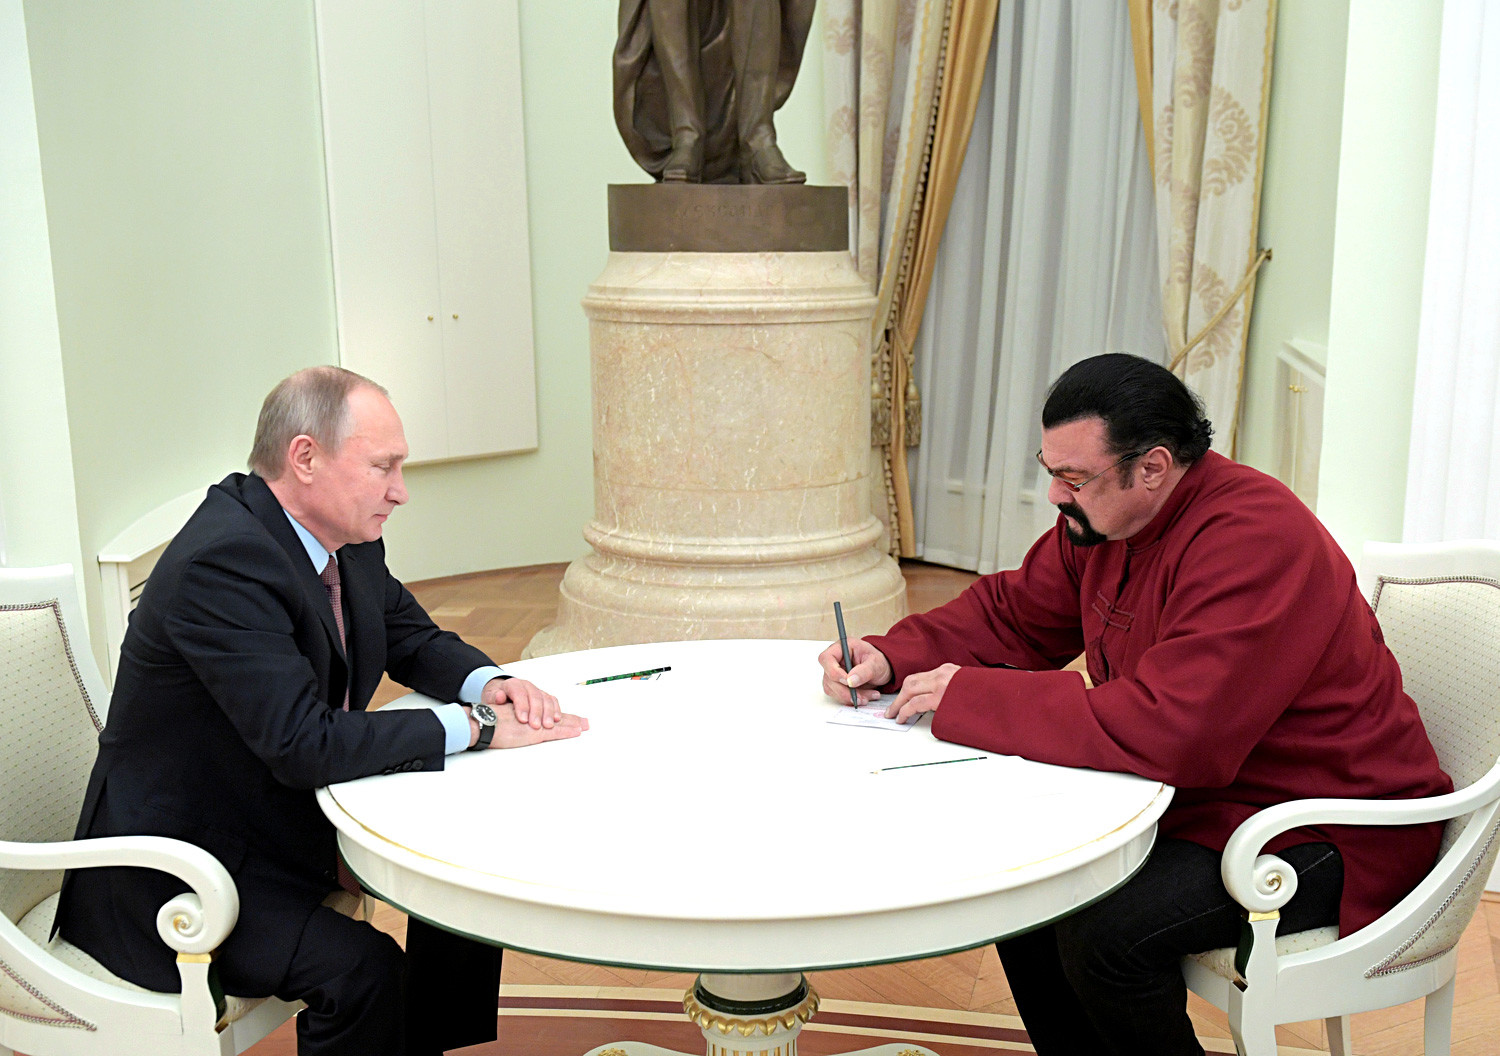 Steven Seagal signs a Russian passport received from Russia's President Vladimir Putin during a meeting at the Kremlin in Moscow, November 25, 2016